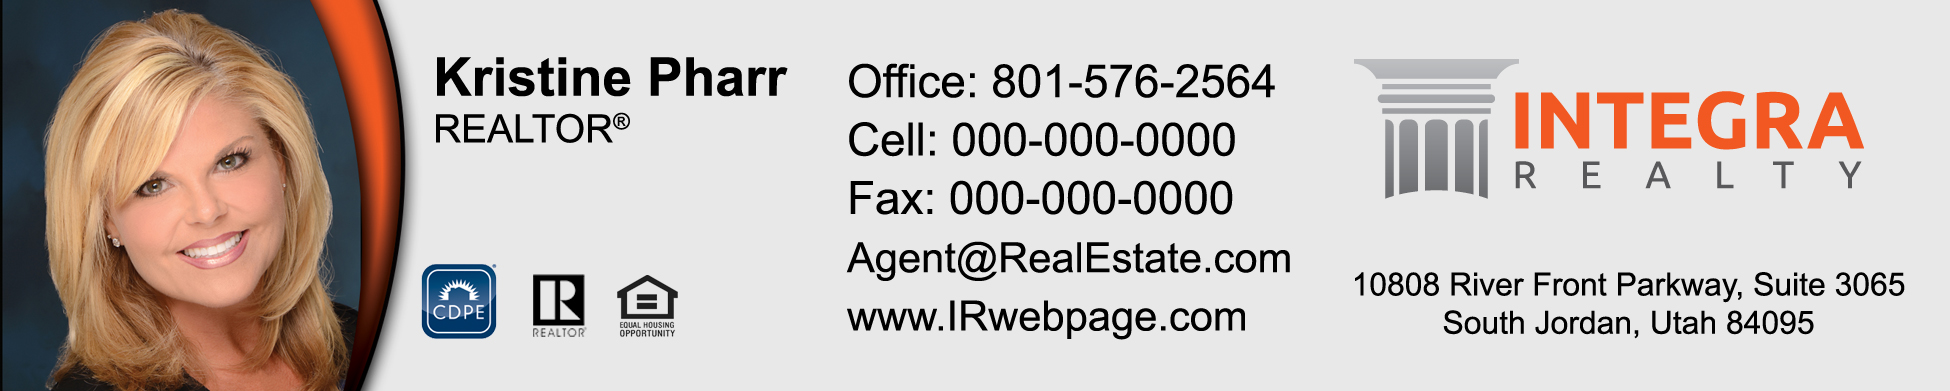 Integra Realty Business Cards   Professionally Designed And